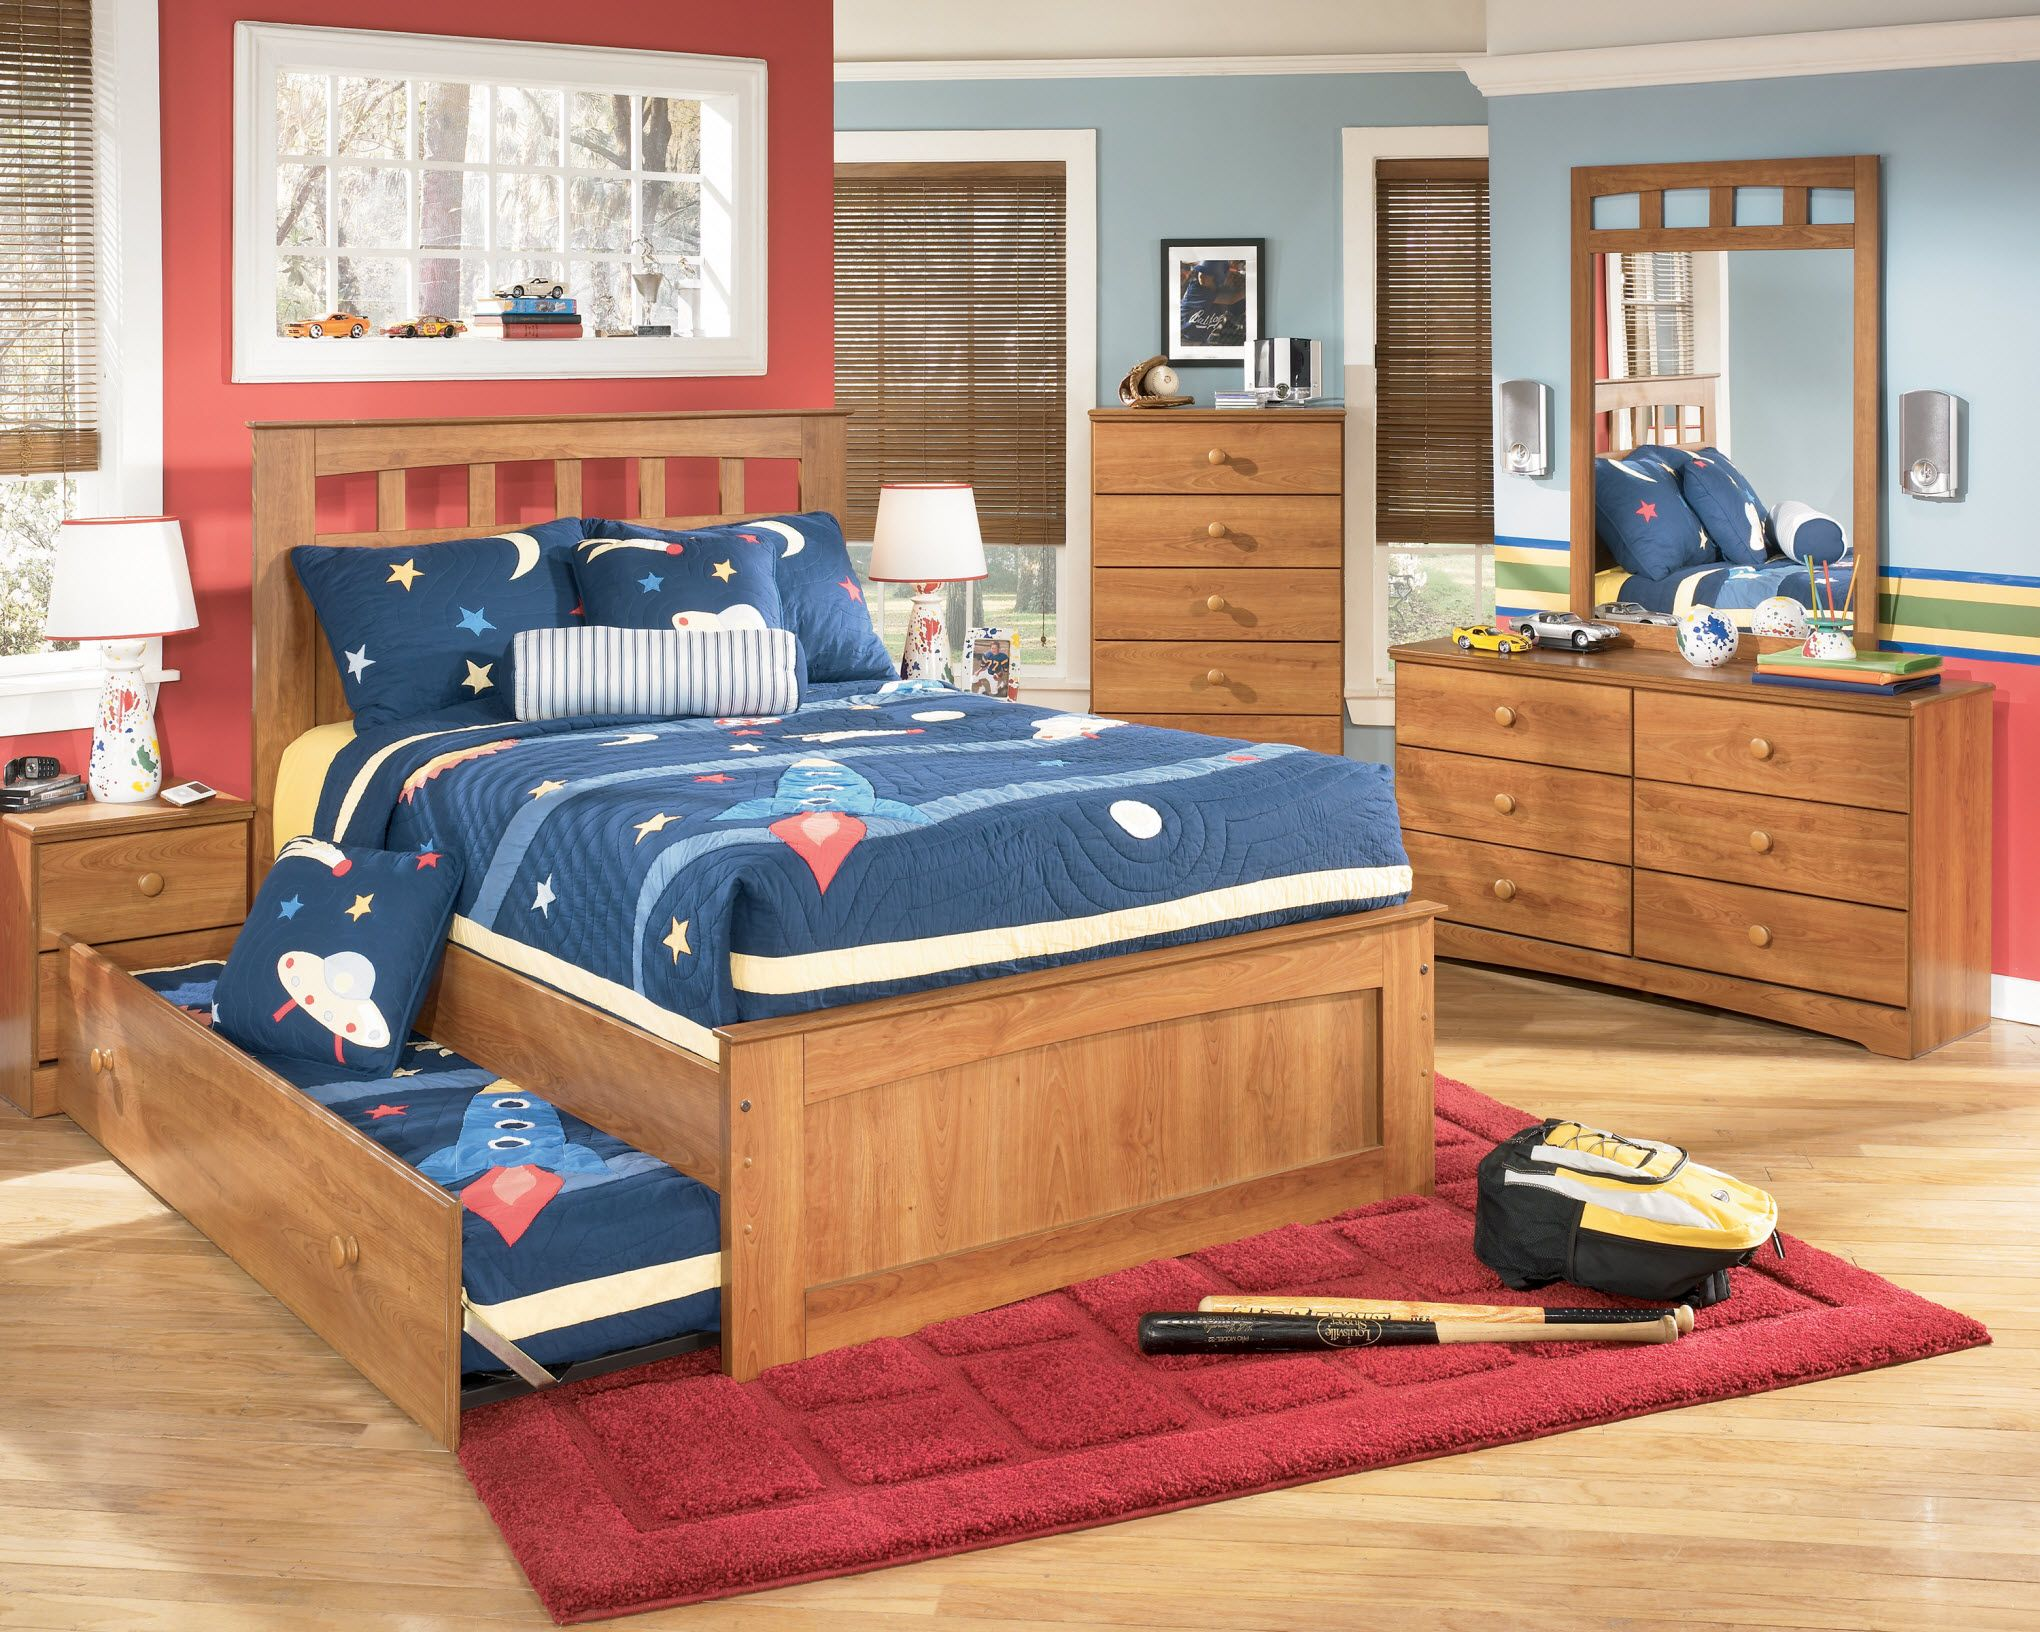 Kids Bedroom Sets Boys cool teenage boys bedroom furniture sets | bedroom | pinterest